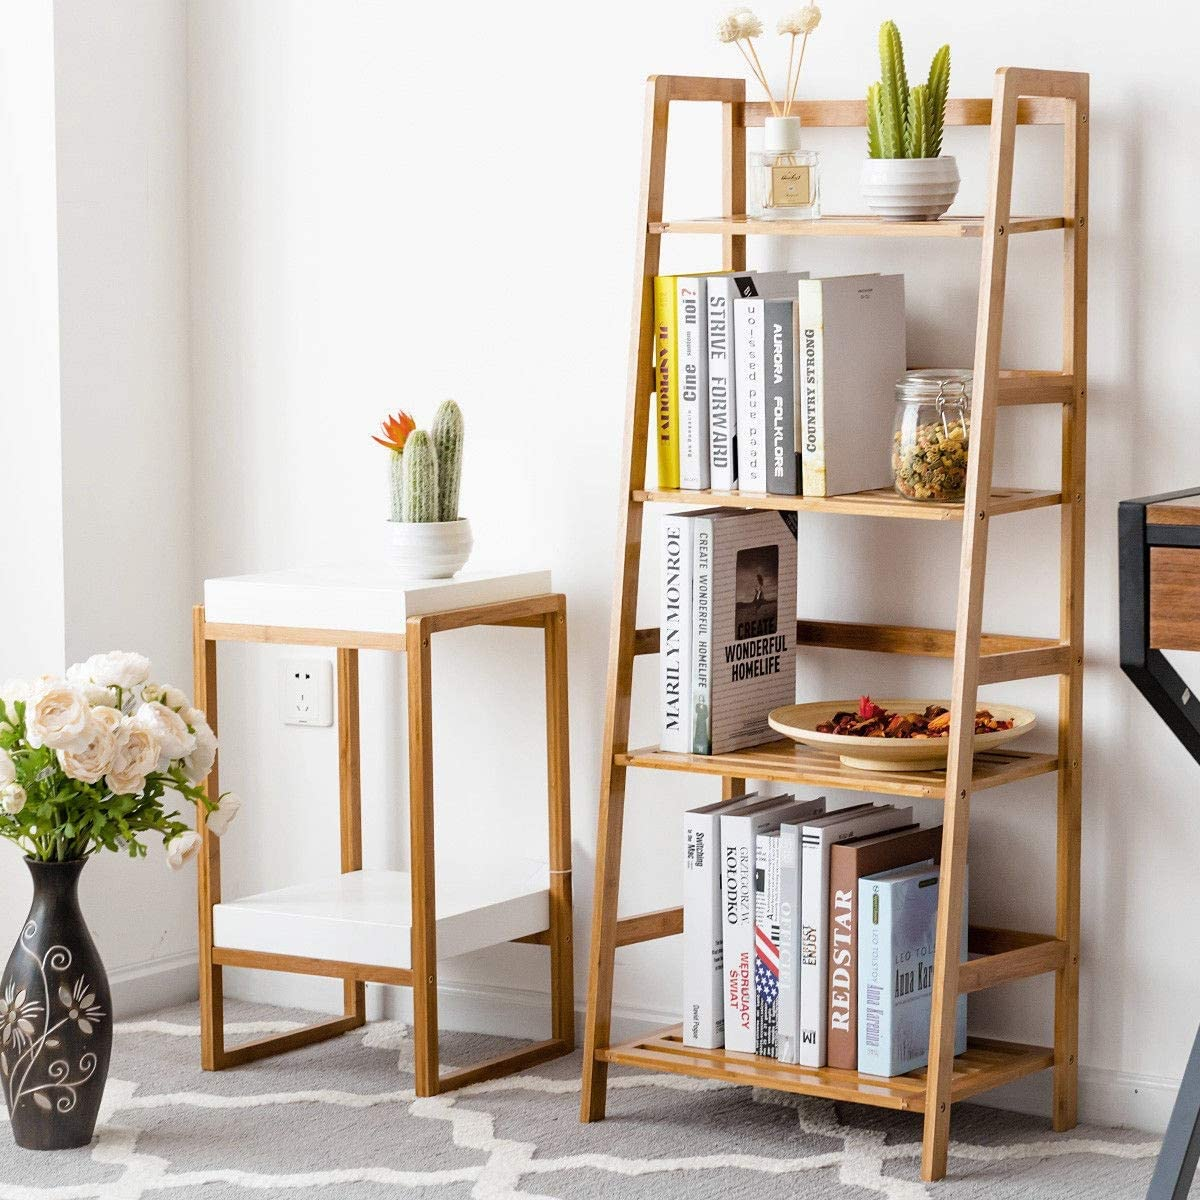 Amazon Com Living Room Design Ideas Functional Design Furniture Accessories Decor Set Decorations Reading Essentials Home Bedroom Decor Multifunctional 4 Shelf Bamboo Plant Flower Storage Stand Kitchen Dining